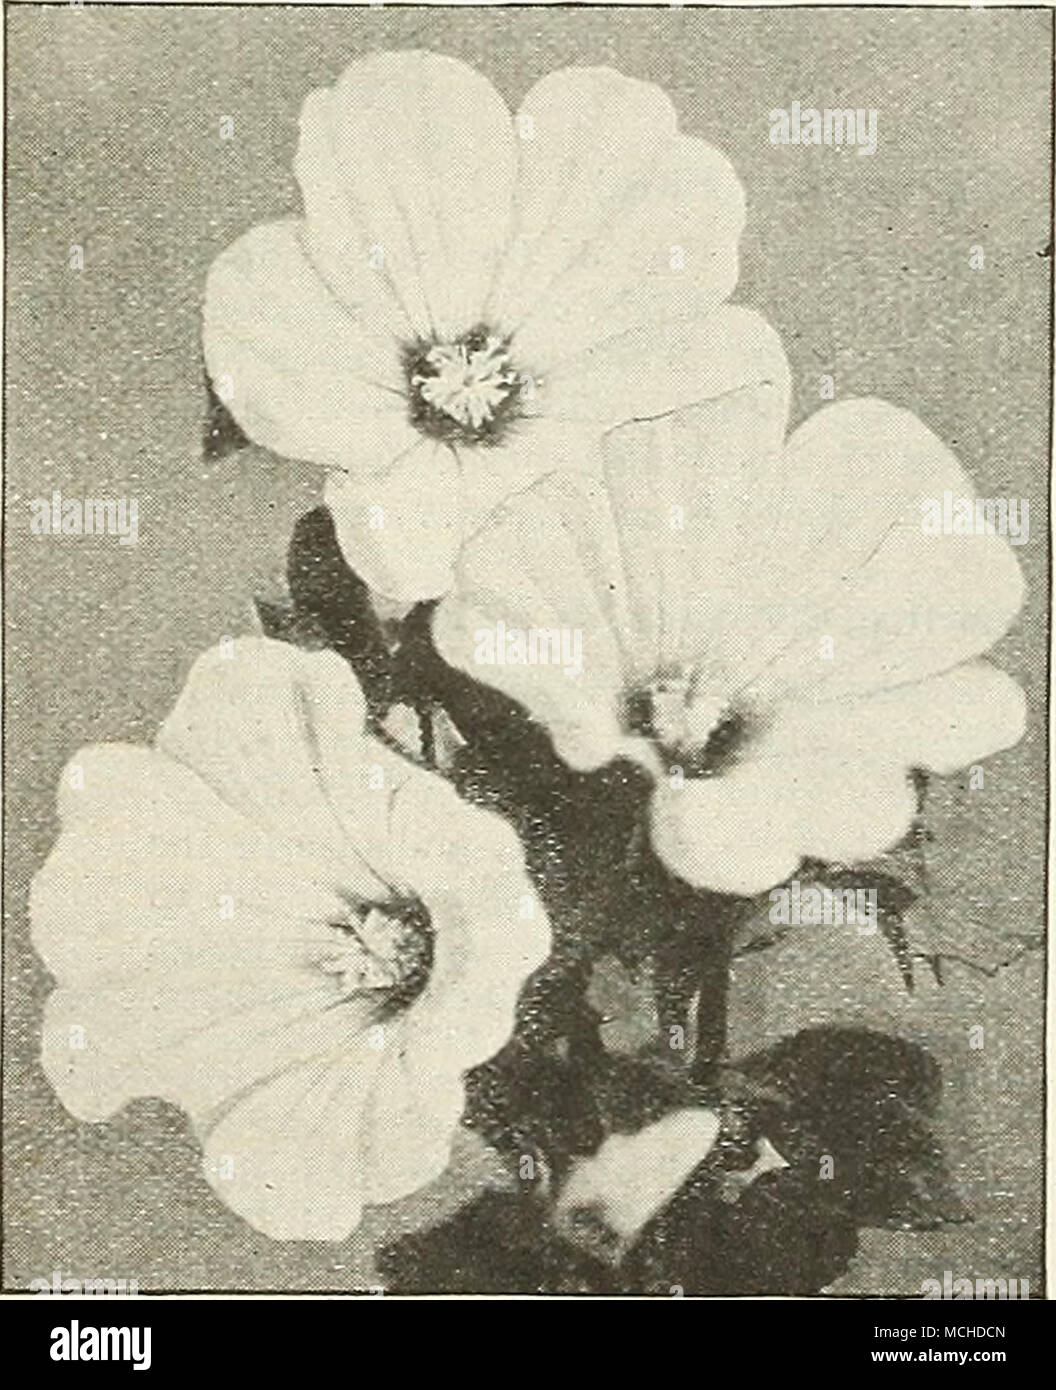 """. Double Stock-flowered Larkspur Exquisite Lavender (Lavandula Vera) PER PKT. 2971 Well-known, sweet-scented, """" hardy perennials; should be ex- tensively grown in the mixed border; 3 feet.  oz., 25 cts. ... 10 Liatris (Blazing Star, or Gay Feather) 2982 Most showy and attractive hardy perennial native plants, with long spikes of purple and rosy-purple flowers from July to September; 3 to 4 feet. Mixed varieties 10 Linaria 2991 Cymbalaria {Kenilworth Ivy, or Mother of Thousands). Lavender and purple. A charming, neat, hardy perennial trailing plant, suitable for baskets, vases, pots and r - Stock Image"""